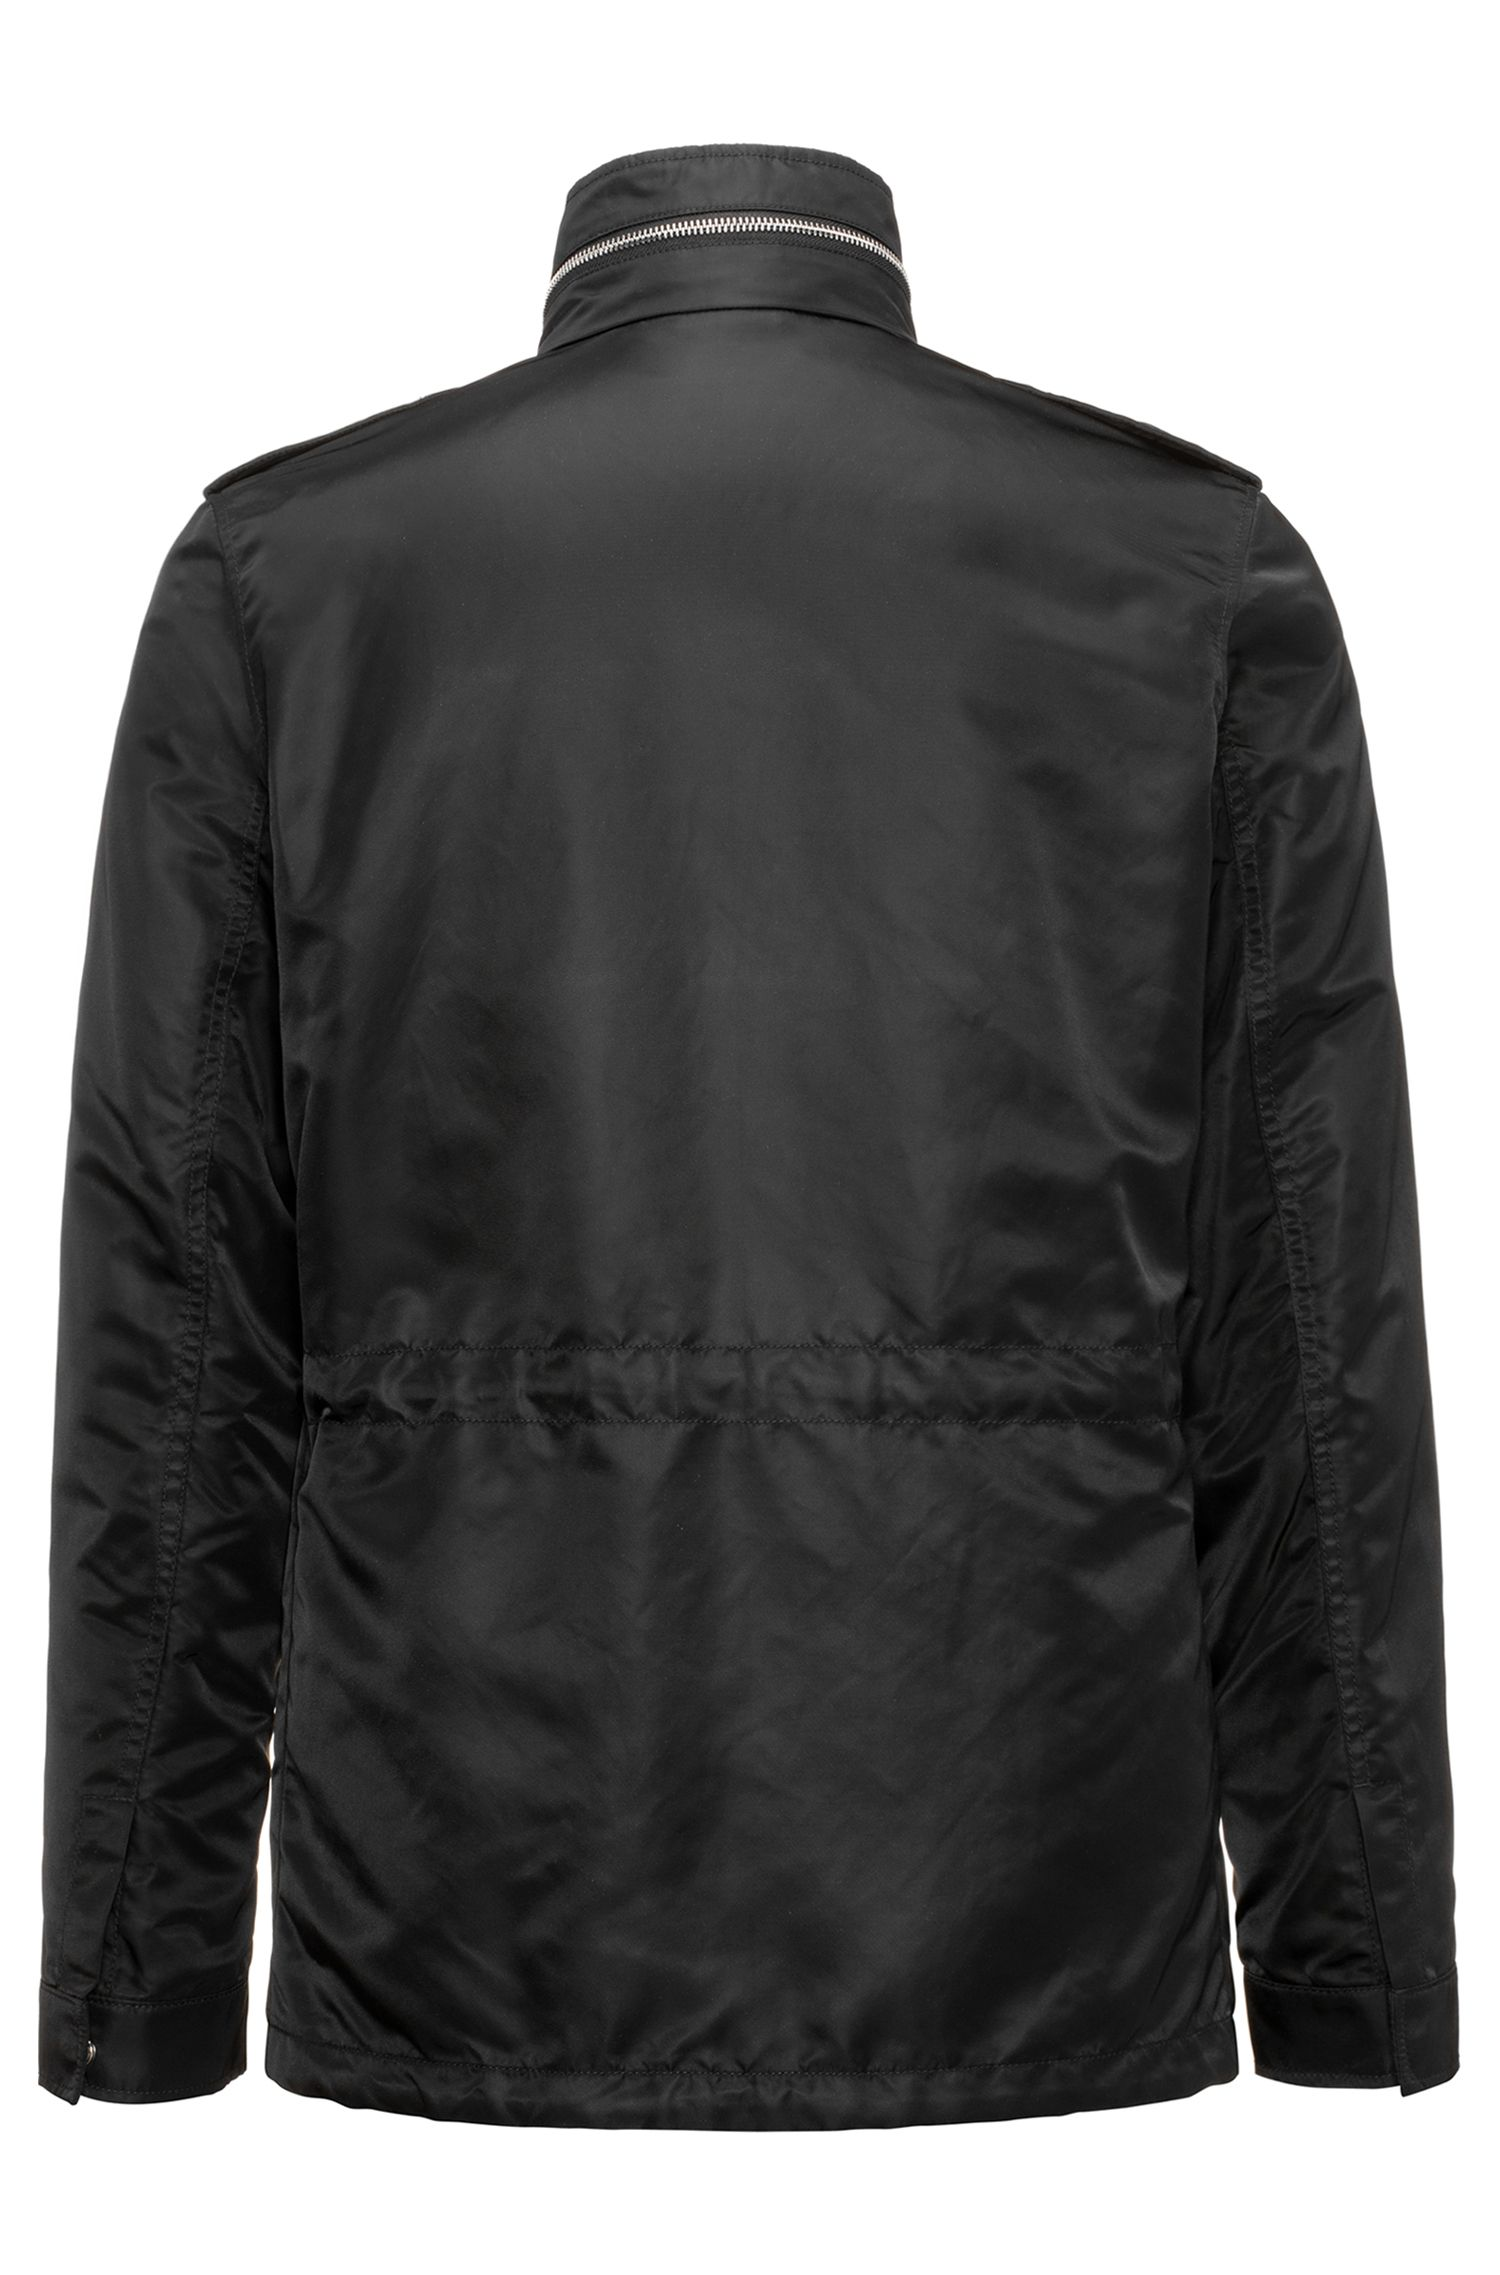 Field jacket in tessuto tecnico con finitura Teflon™